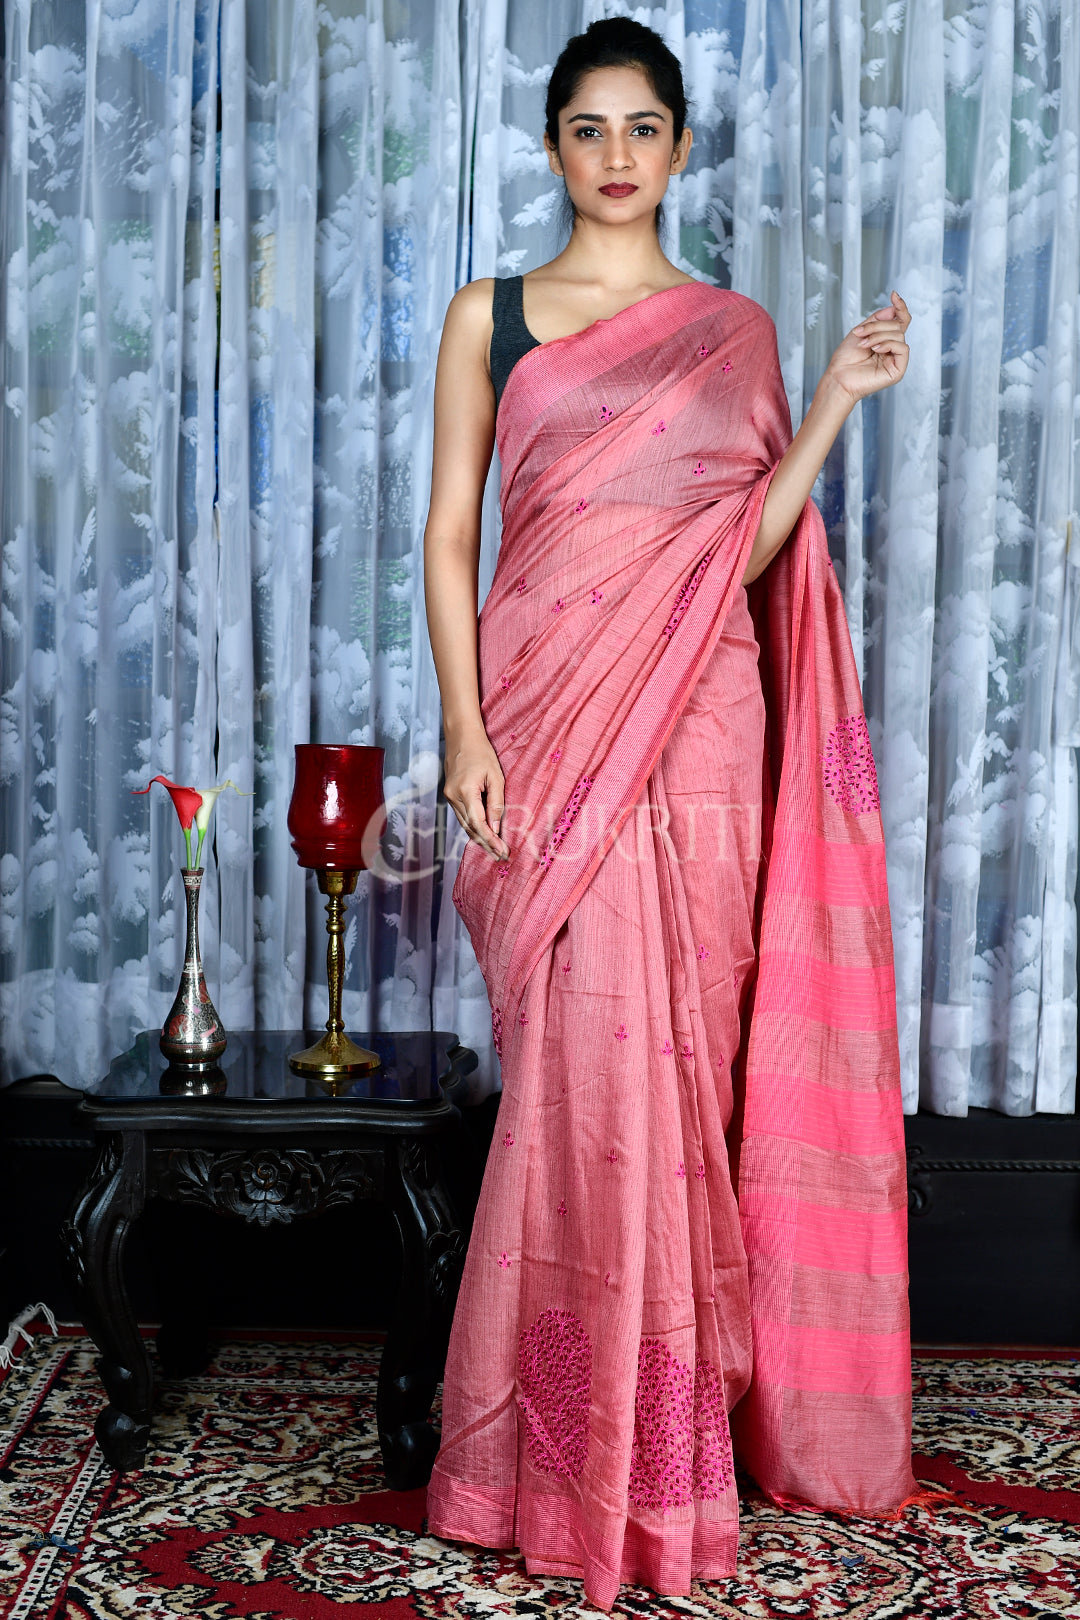 ROUGE PINK BLENDED MATKA WITH JAAL CUT EMBROIDERY